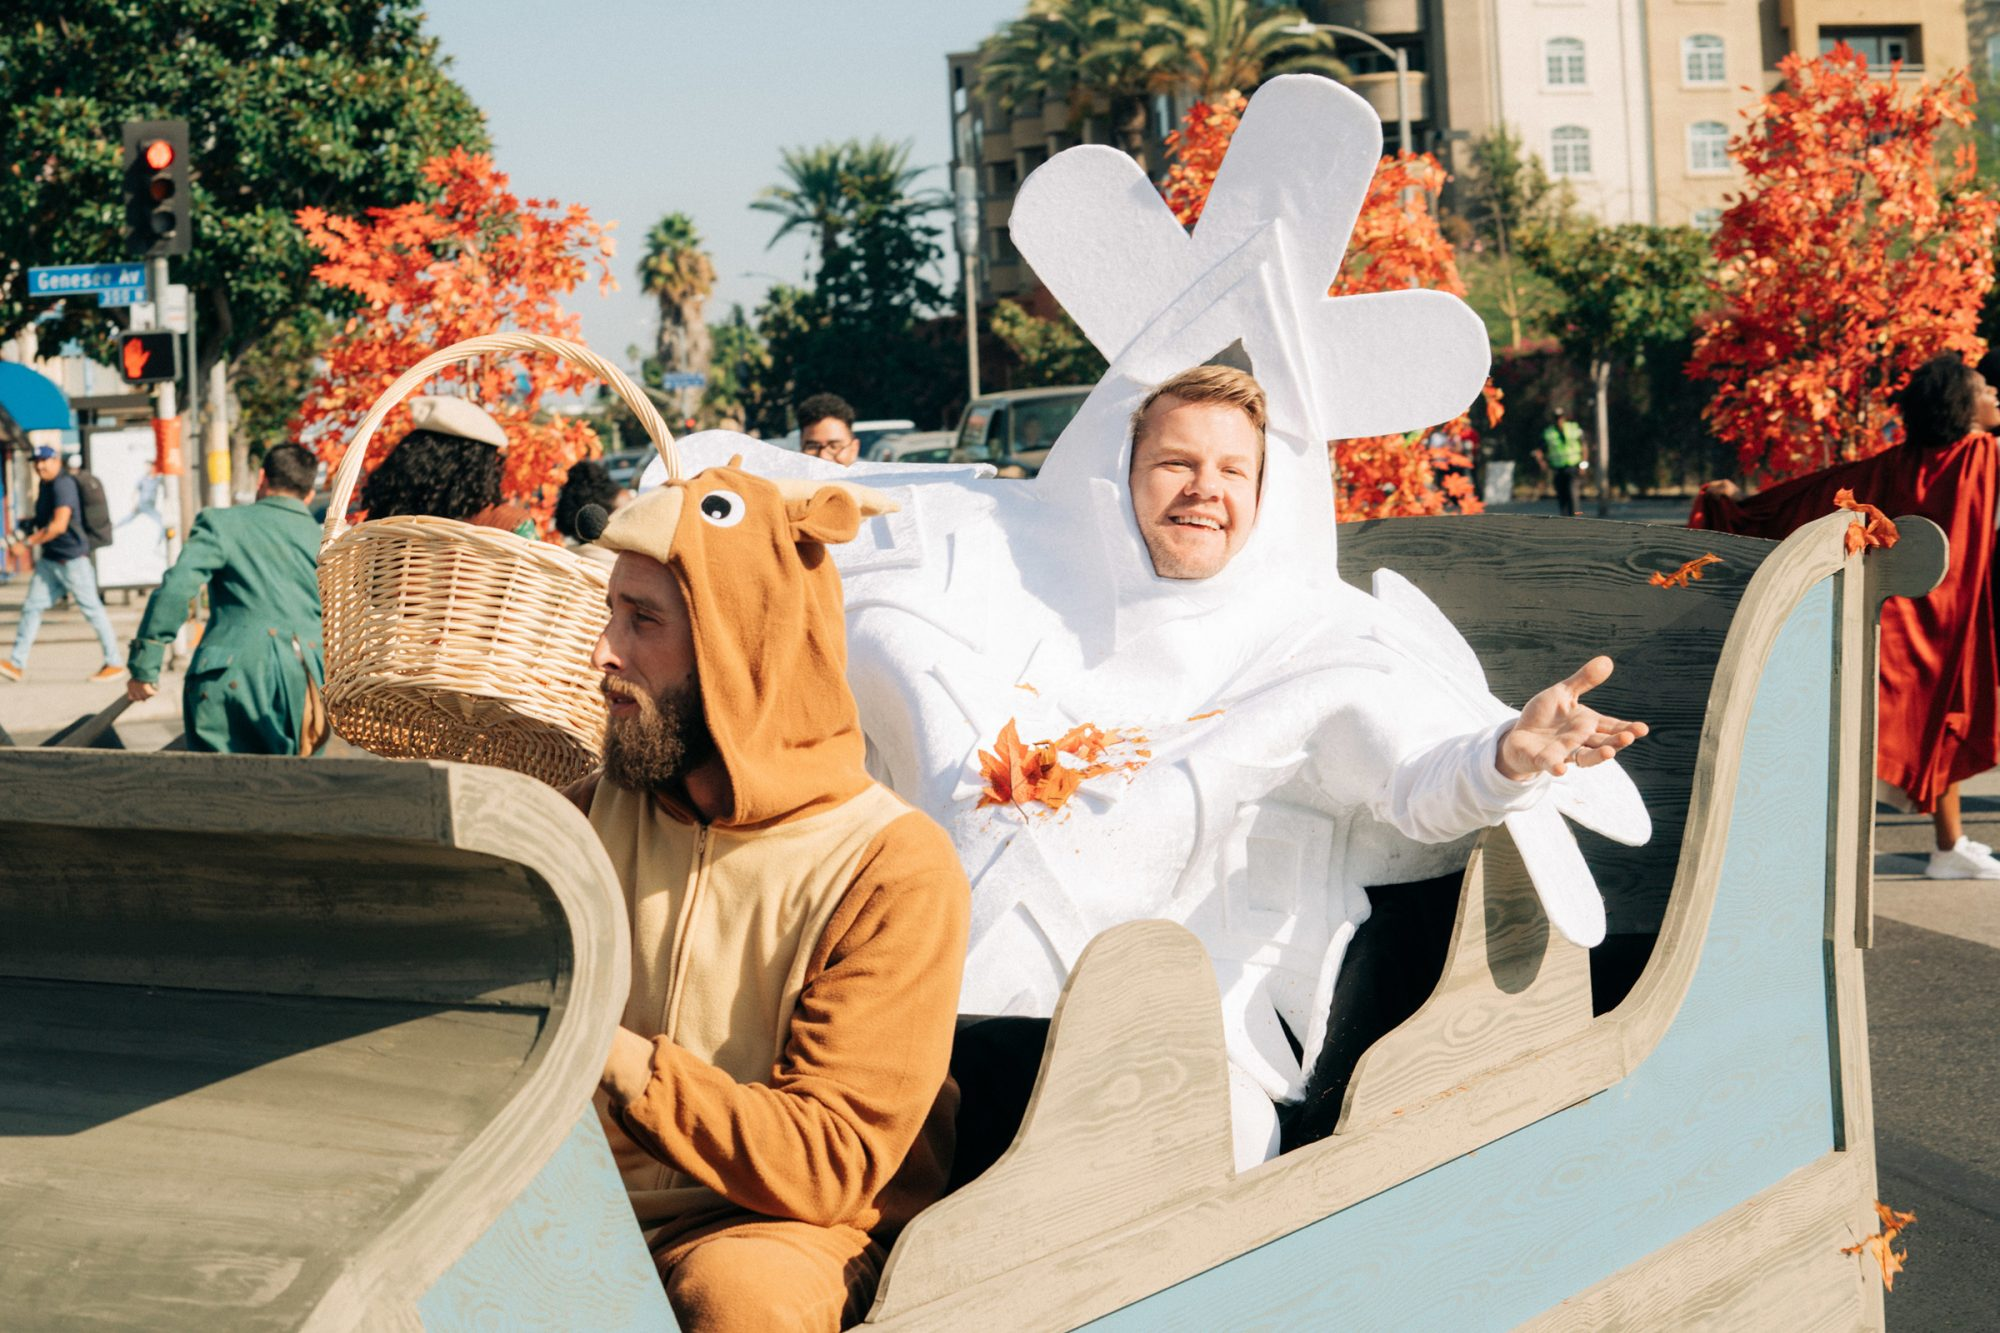 Kristen Bell, Idina Menzel, Josh Gad, and Jonathan Groff join James Corden for Crosswalk the Musical: Frozen 2, during The Late Late Show with James Corden airing Wednesday, November 20, 2019.